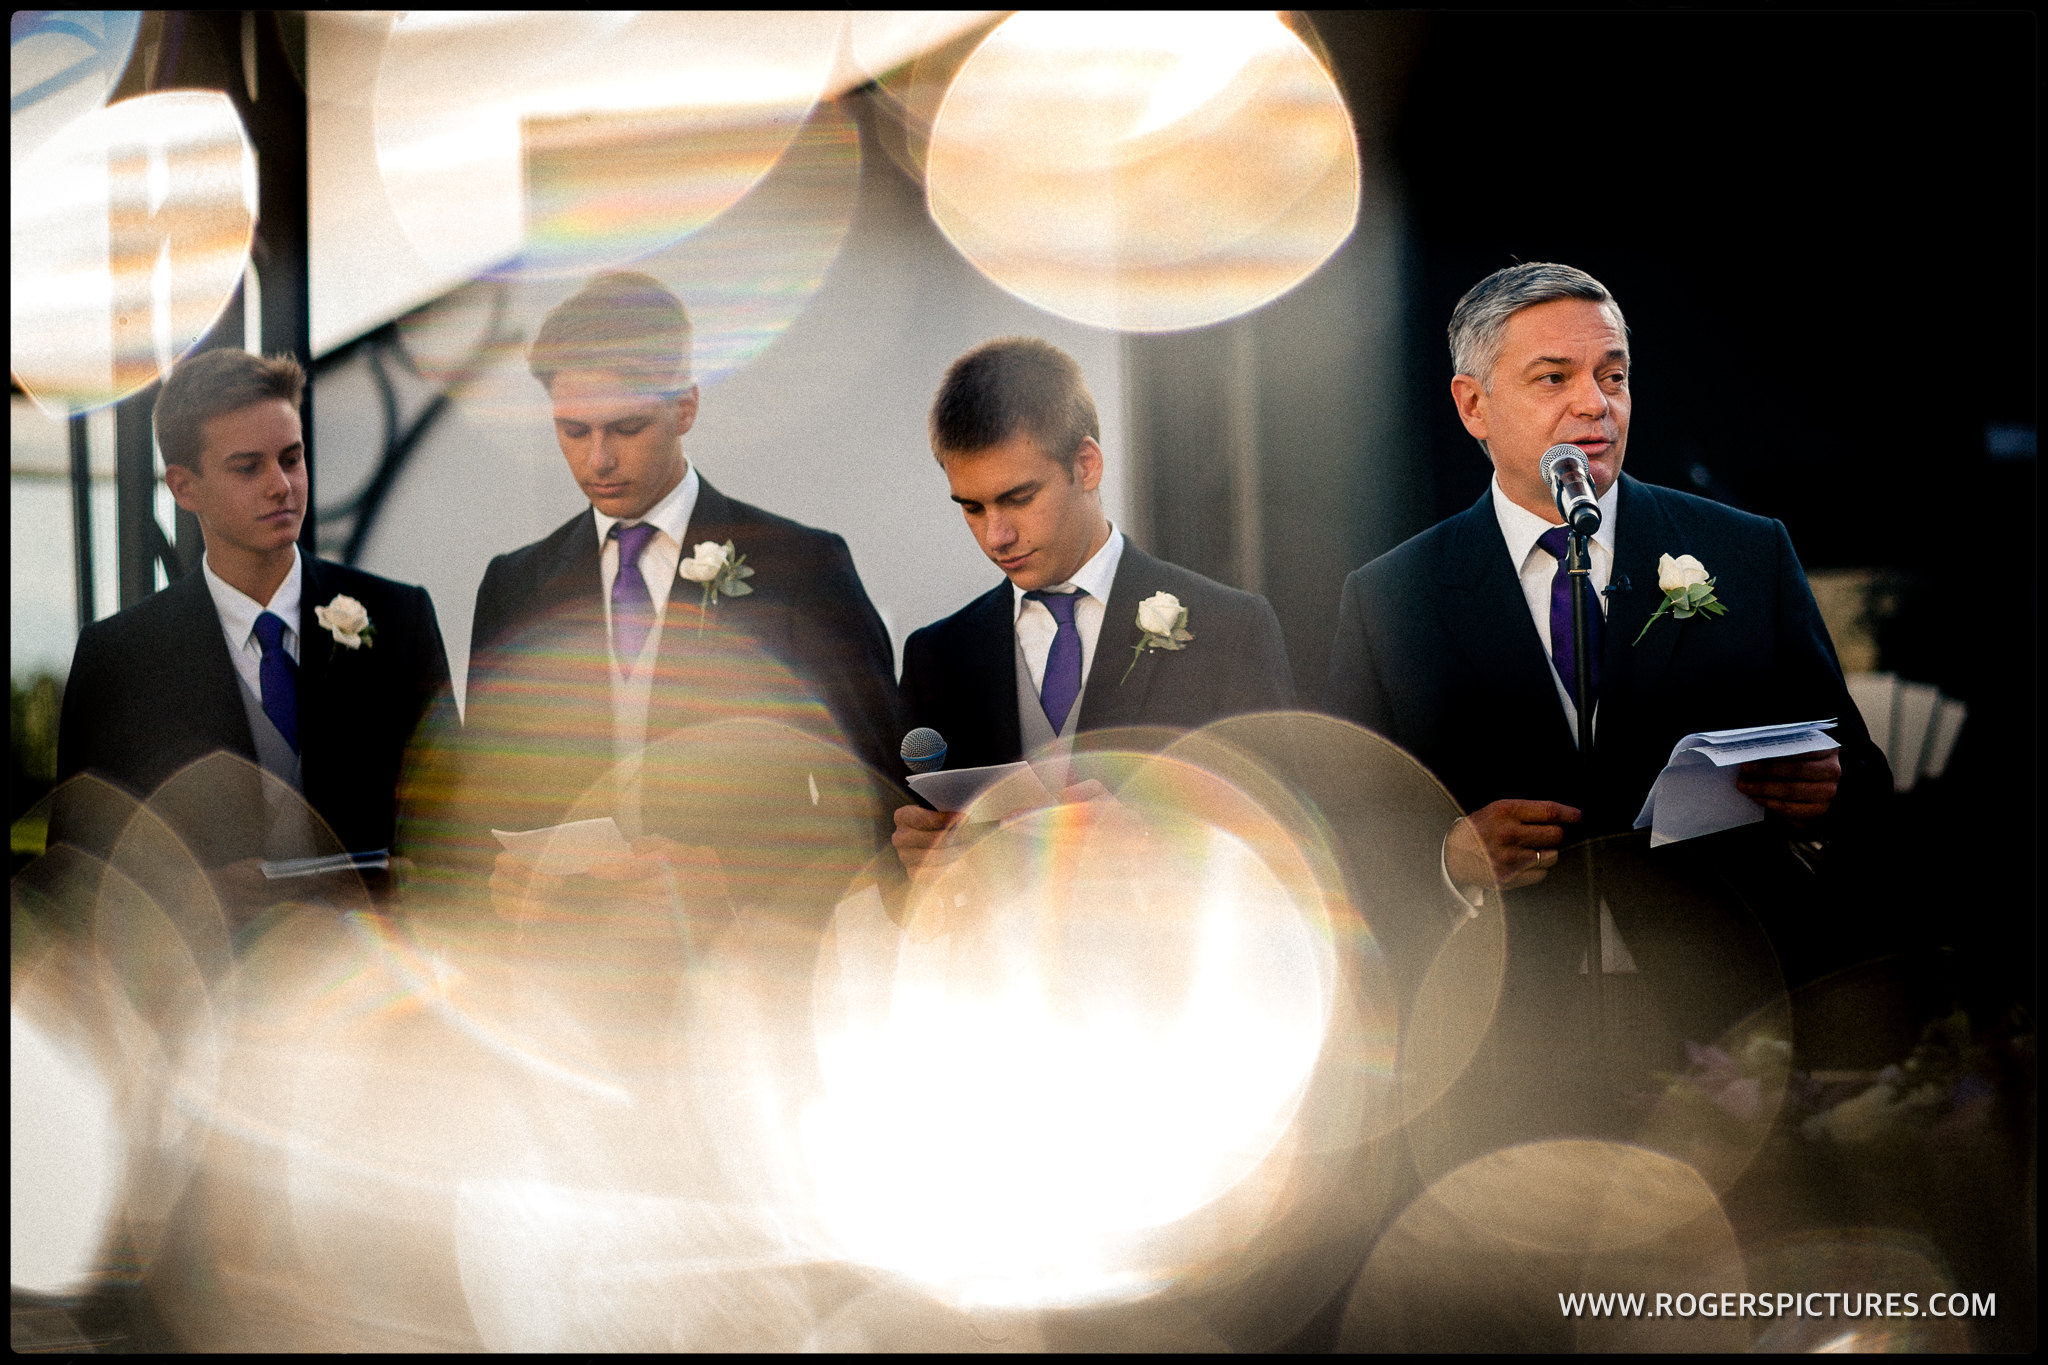 Wrotham Park wedding speeches